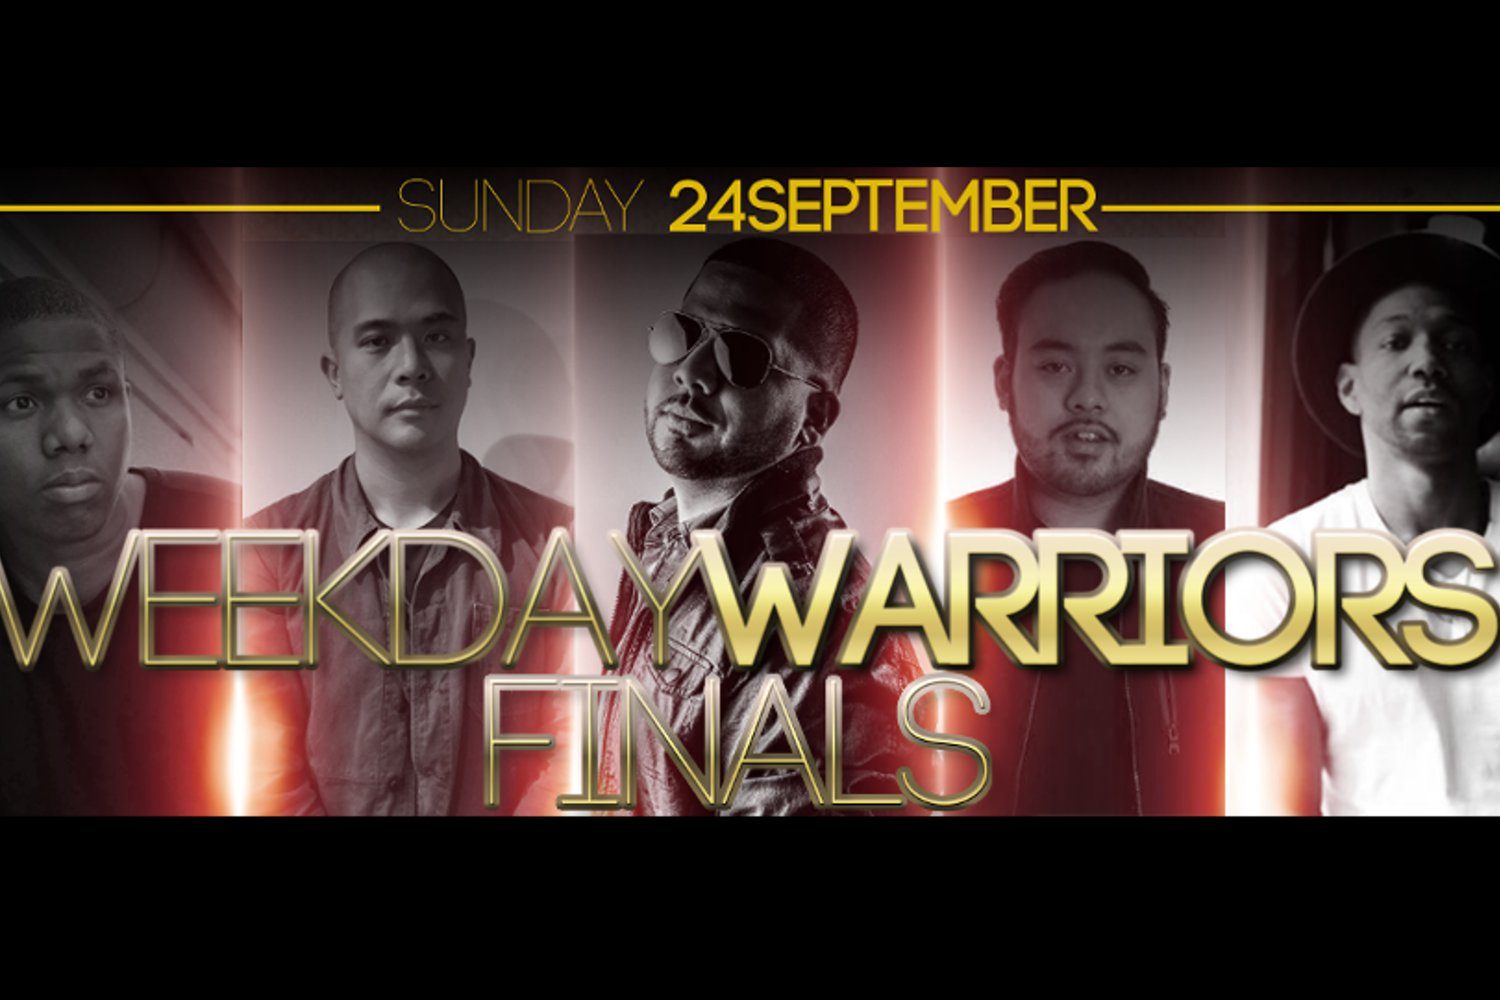 FINALS GET YOUR TICKETS NOW